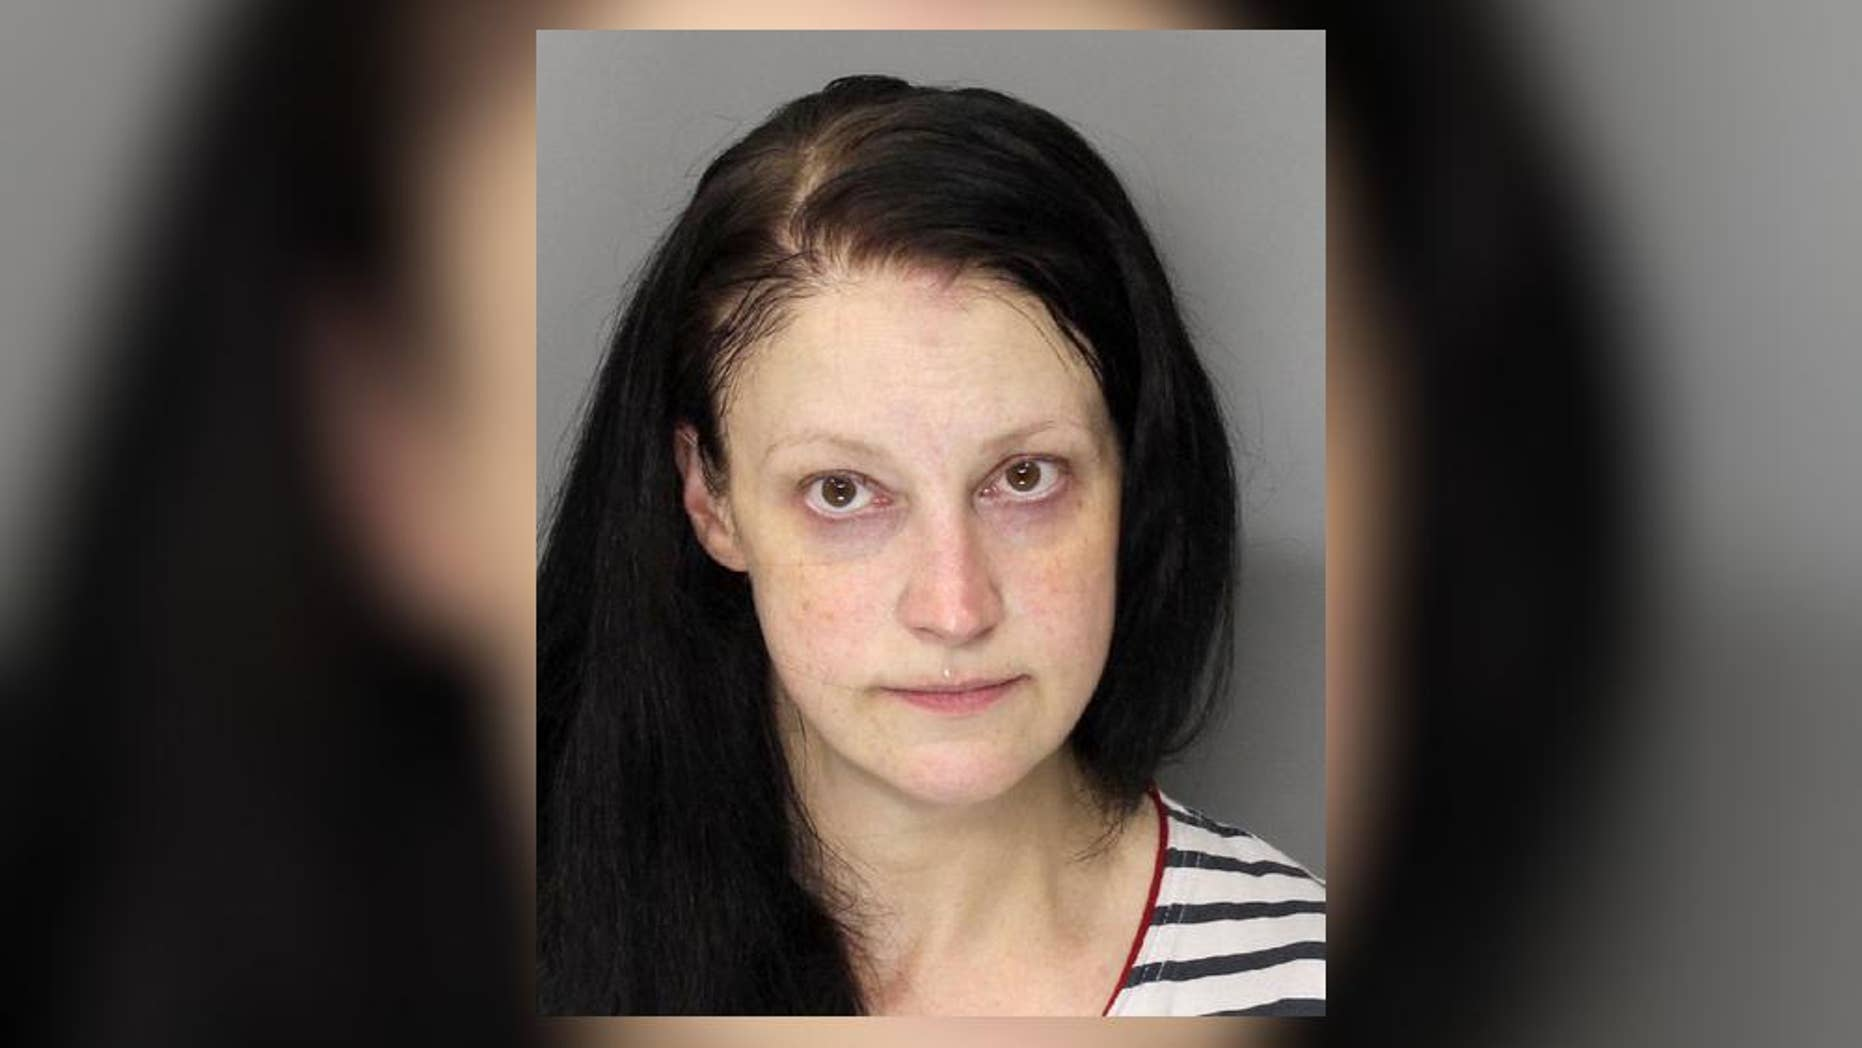 Carol June Sautter is in custody after allegedly placing her dead newborn in a freezer, Georgia police say.